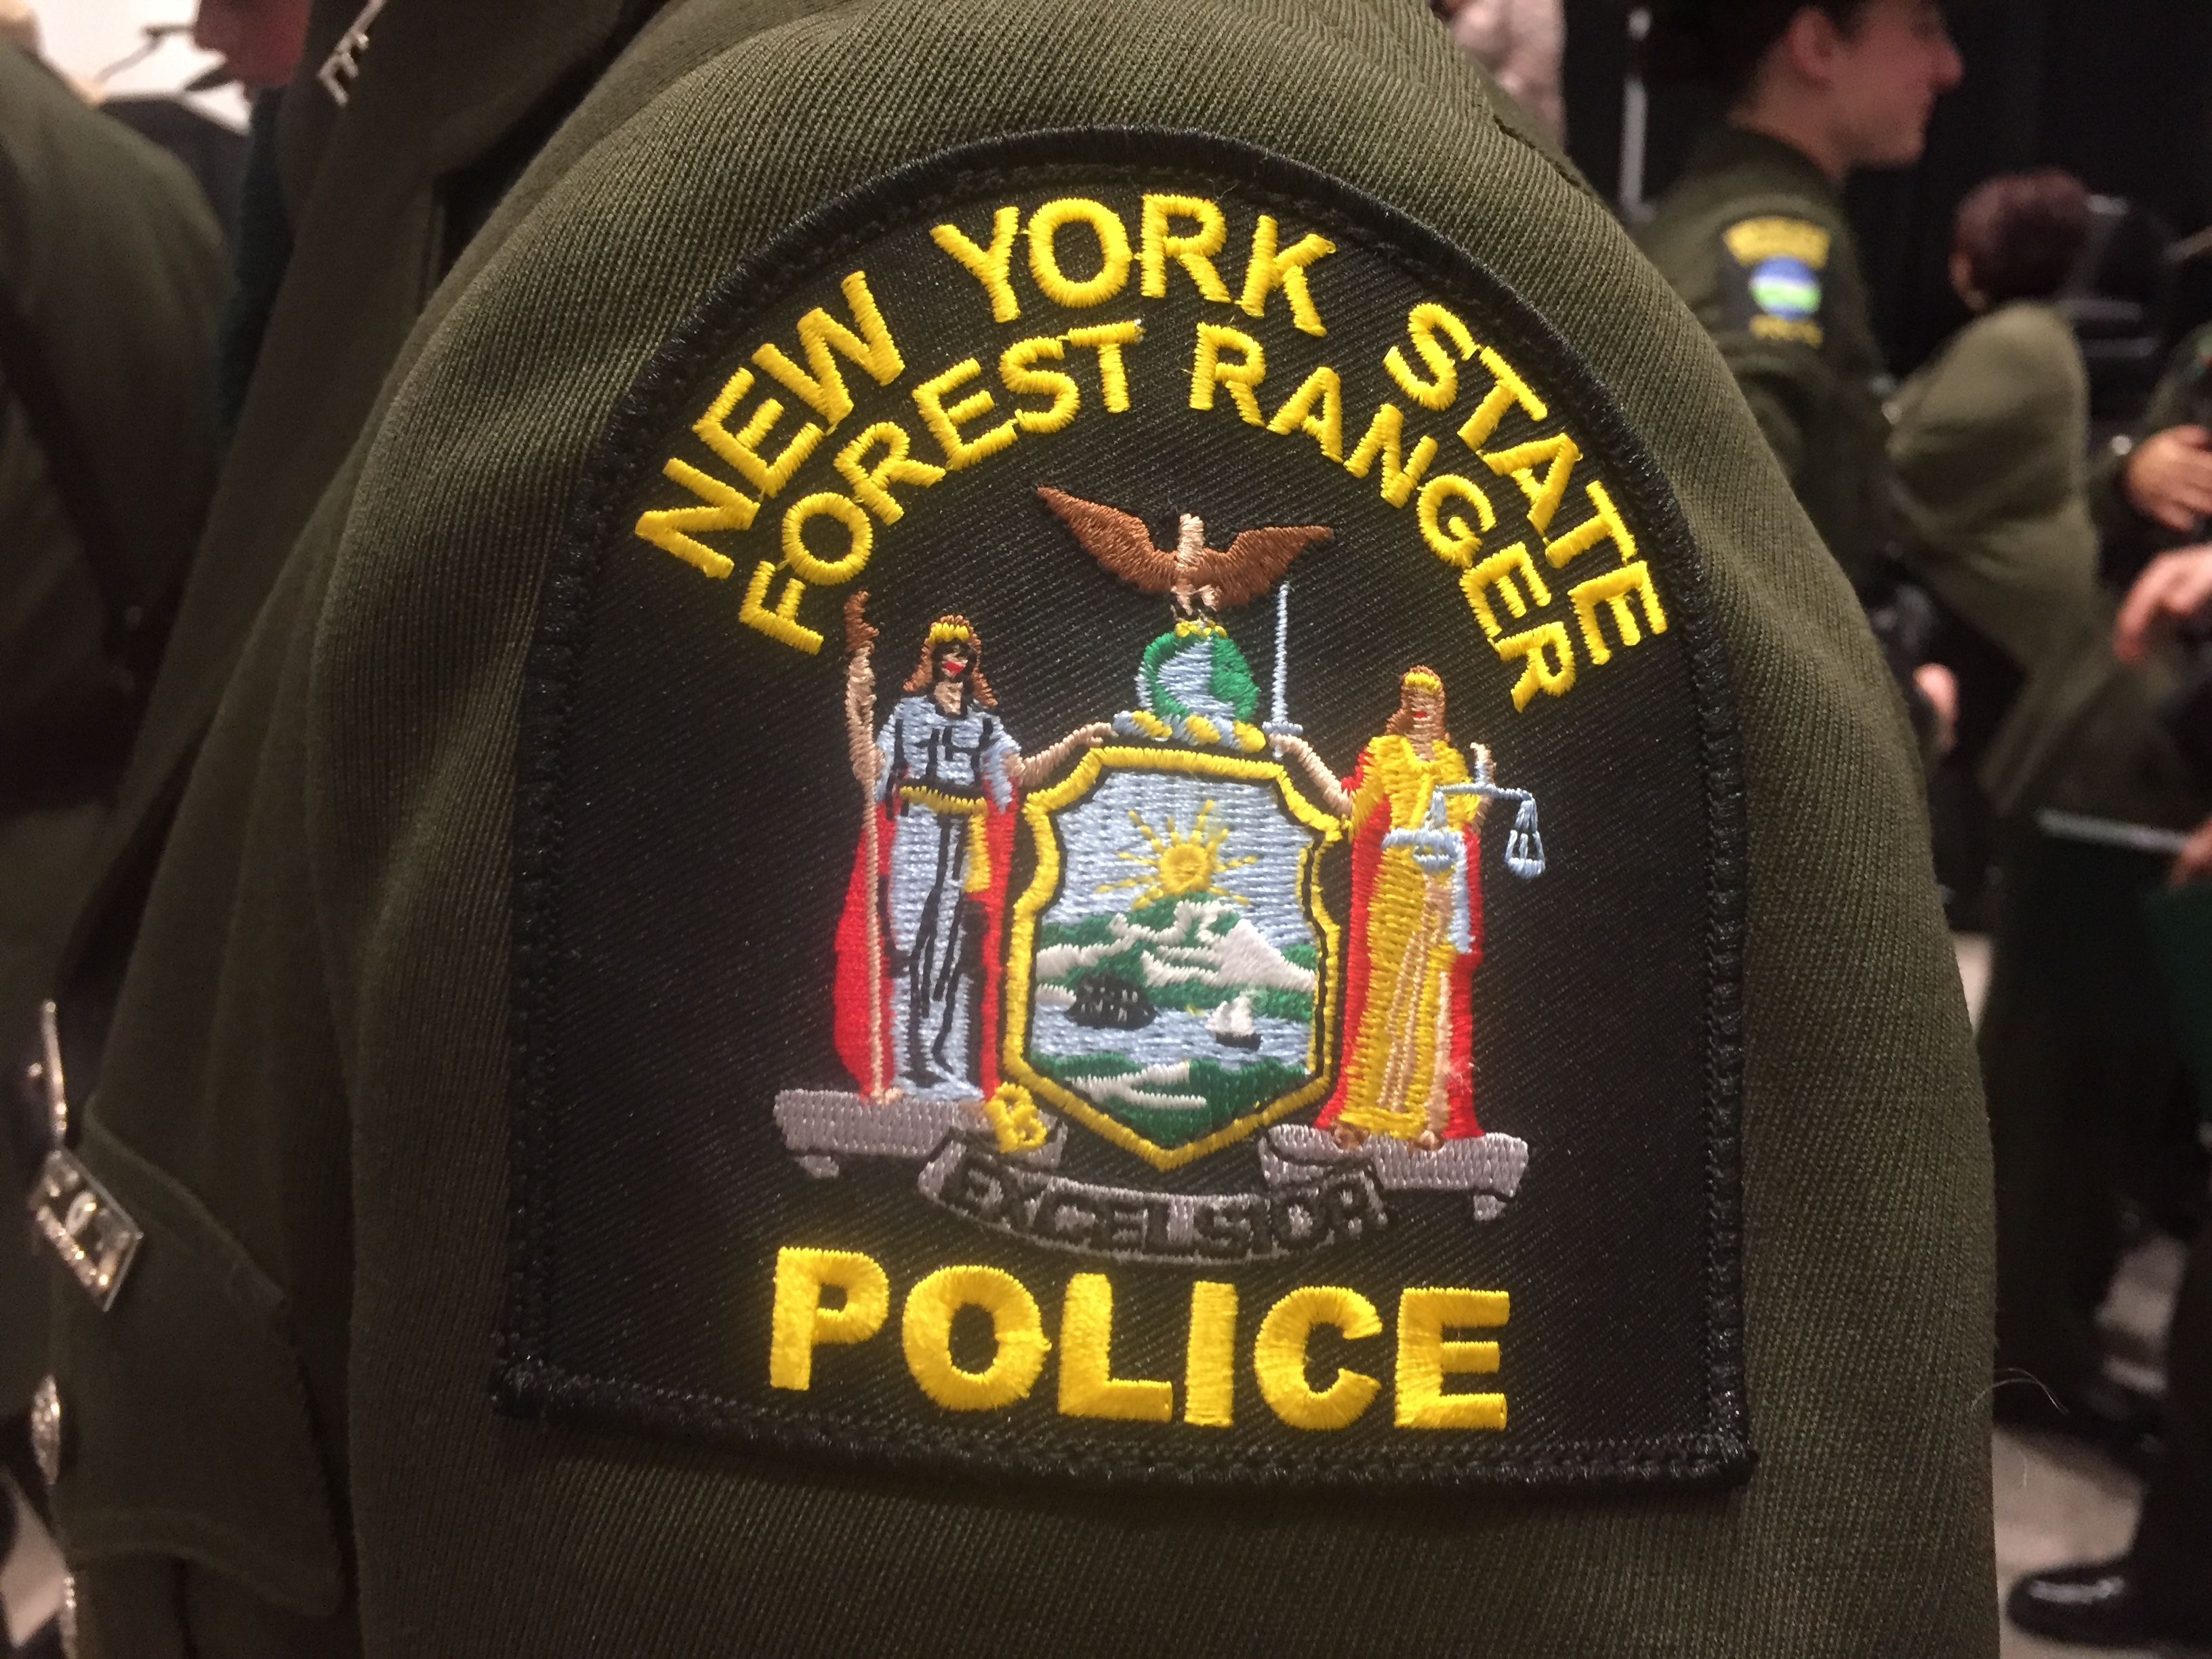 Uniform and official park ranger badge. Mt Marcy Rescue Hiker With Hip Injury Carried Down Snowy Trail By Forest Rangers And Others At Night Newyorkupstate Com